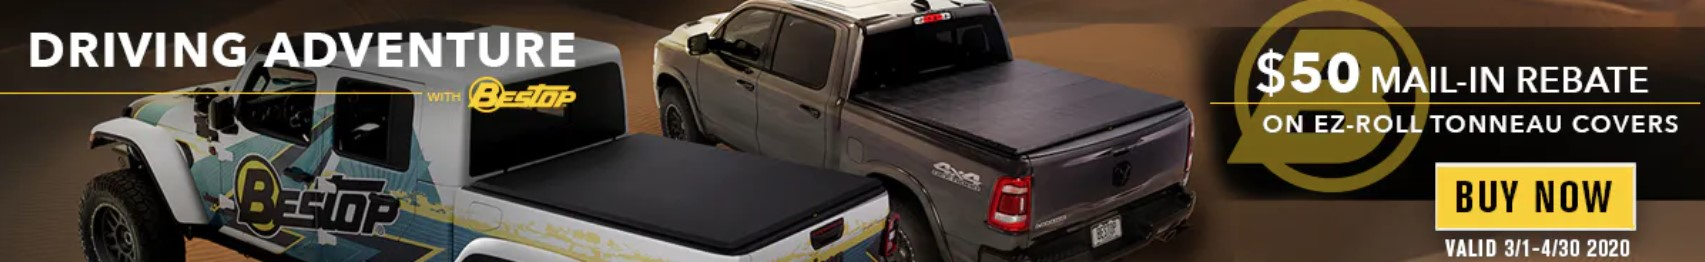 "Bestop: Get $50 Back on EZ-Roll Tonneau Covers During ""Driving Adventure"" Event"